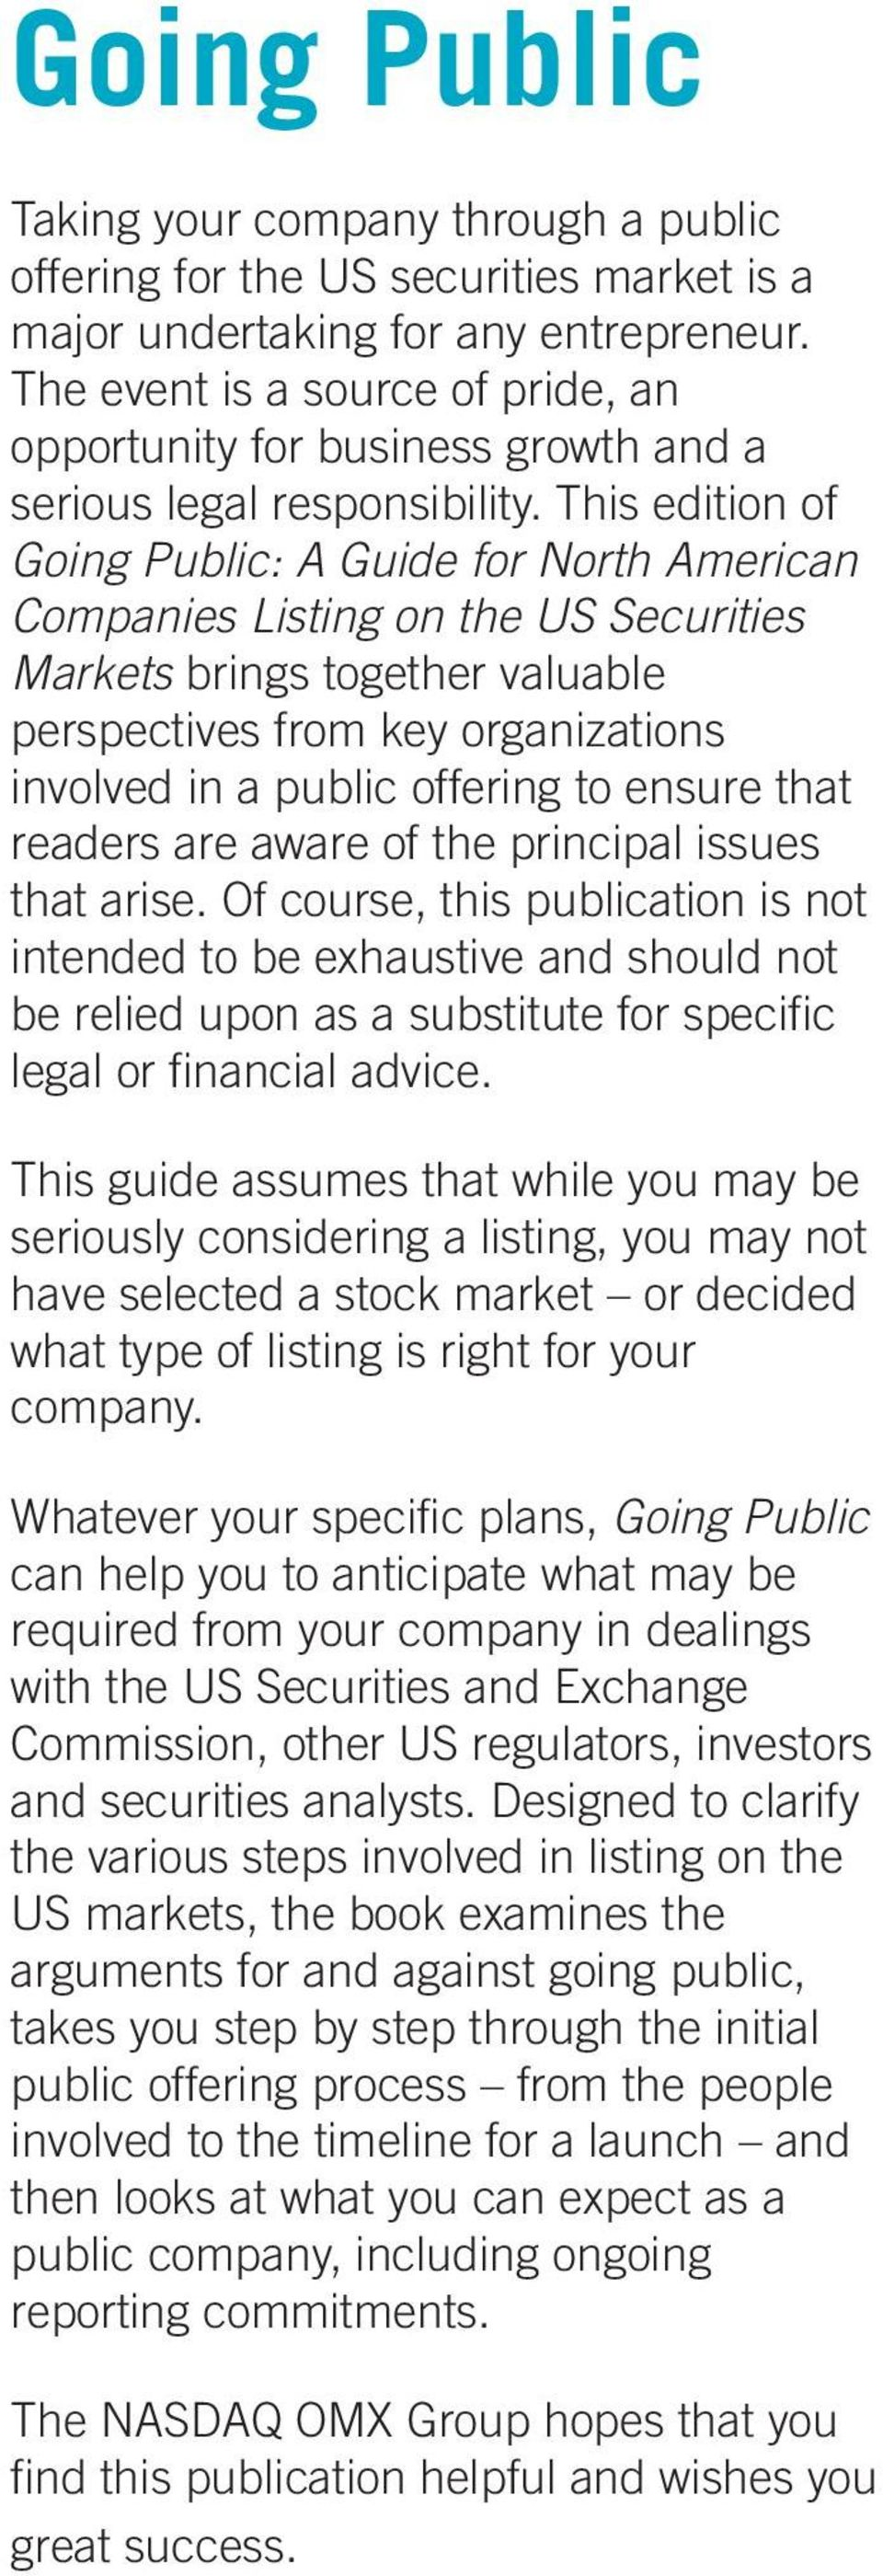 This edition of Going Public: A Guide for North American Companies Listing on the US Securities Markets brings together valuable perspectives from key organizations involved in a public offering to